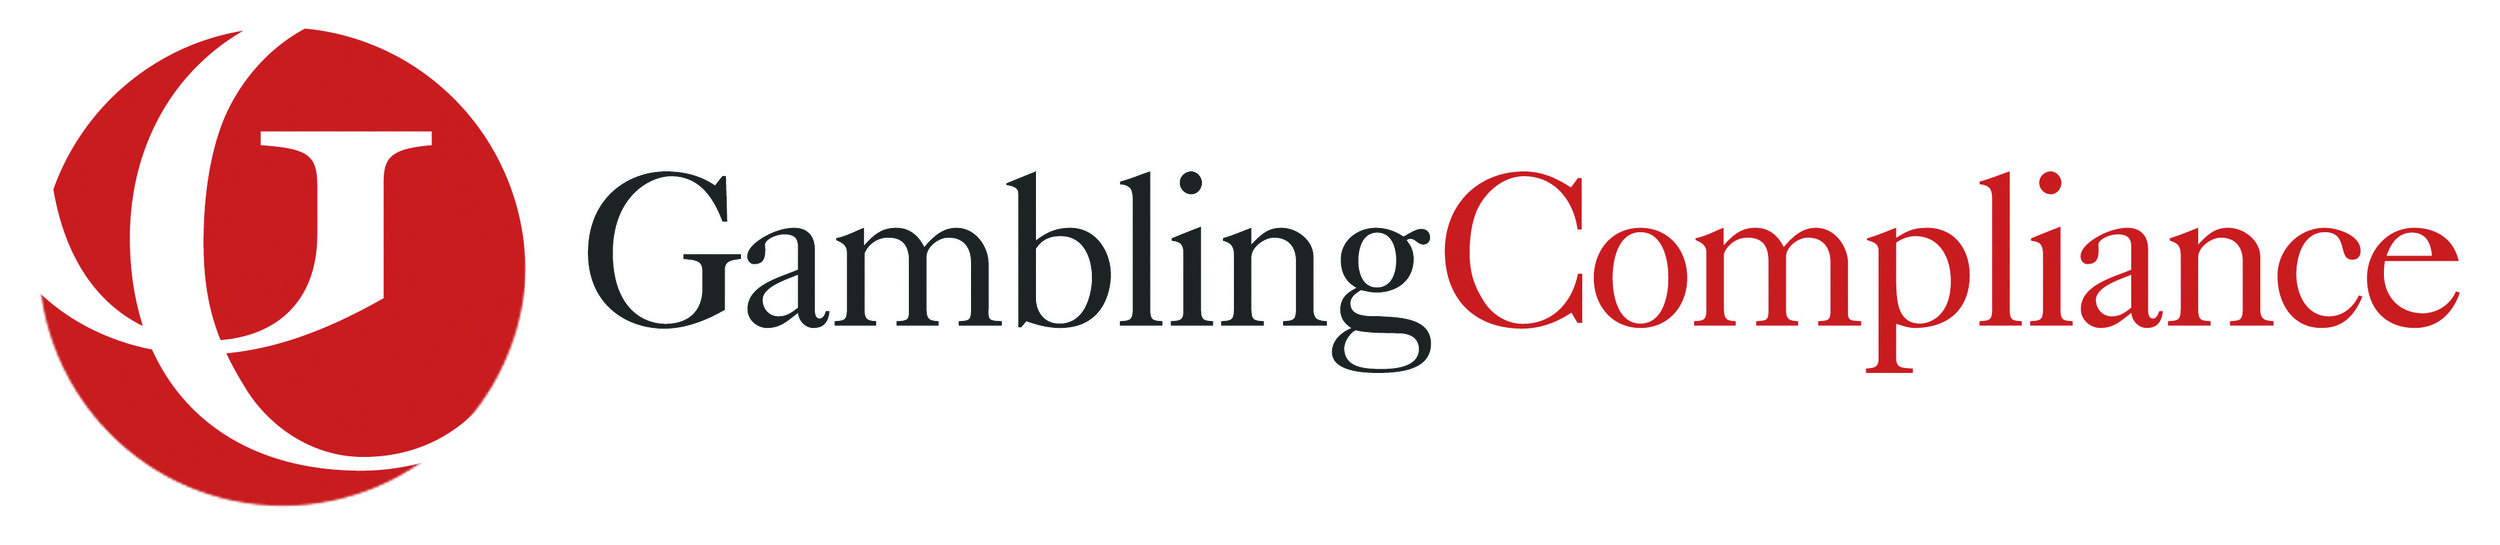 - GamblingCompliance is the leading provider of independent legal, regulatory and business intelligence to the global gambling industry.Trusted by leading names all over the world, we power more informed understanding and effective decision making.Our independent analysis of legal and policy developments provides the comprehensive coverage gaming industry professionals need to understand what regulatory changes mean for your business opportunities.Based in London, Washington, D.C. and Taipei, GamblingCompliance's team of in-house analysts and journalists boast an unrivalled network of contacts among policymakers, lobbyists and legal experts, as well as a wealth of experience to analyse regulatory change as it affects all sectors of the gambling industry.Find out more at gamblingcompliance.com